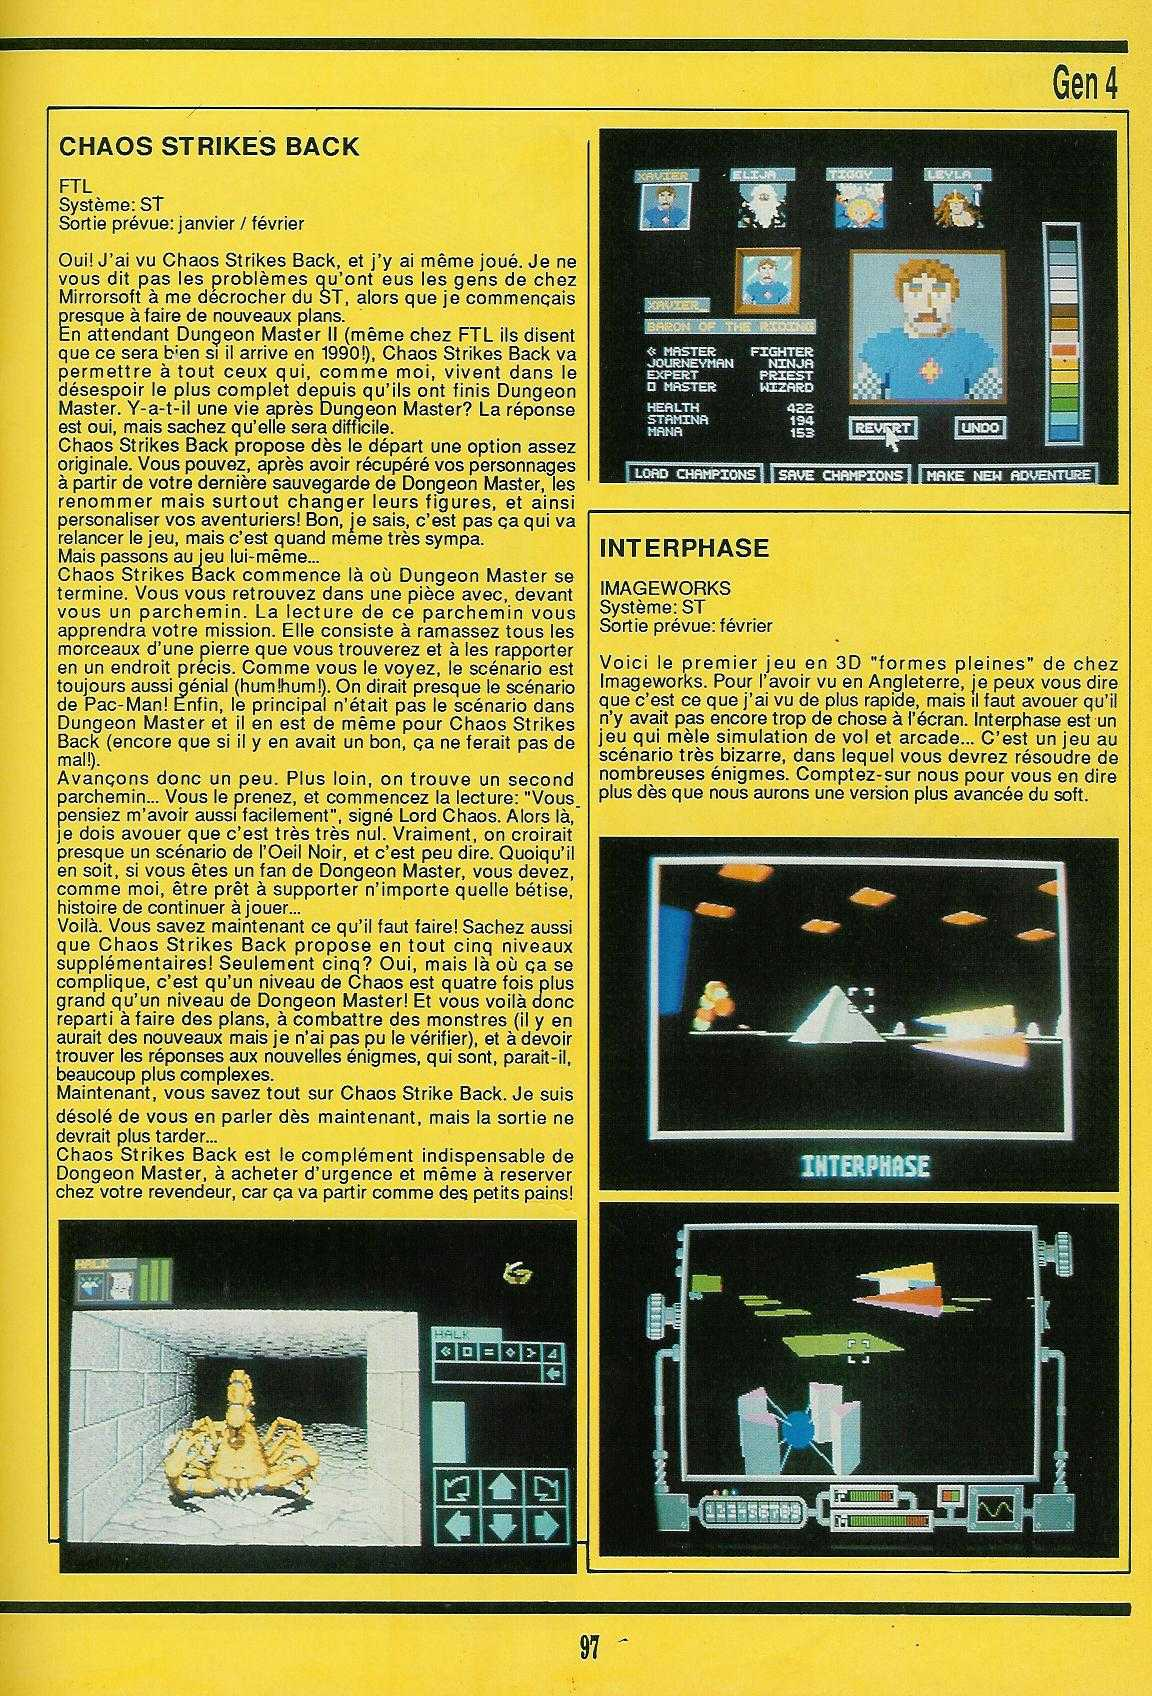 Chaos Strikes Back for Atari ST Preview published in French magazine 'Gen4', Issue #8, January 1989, Page 97